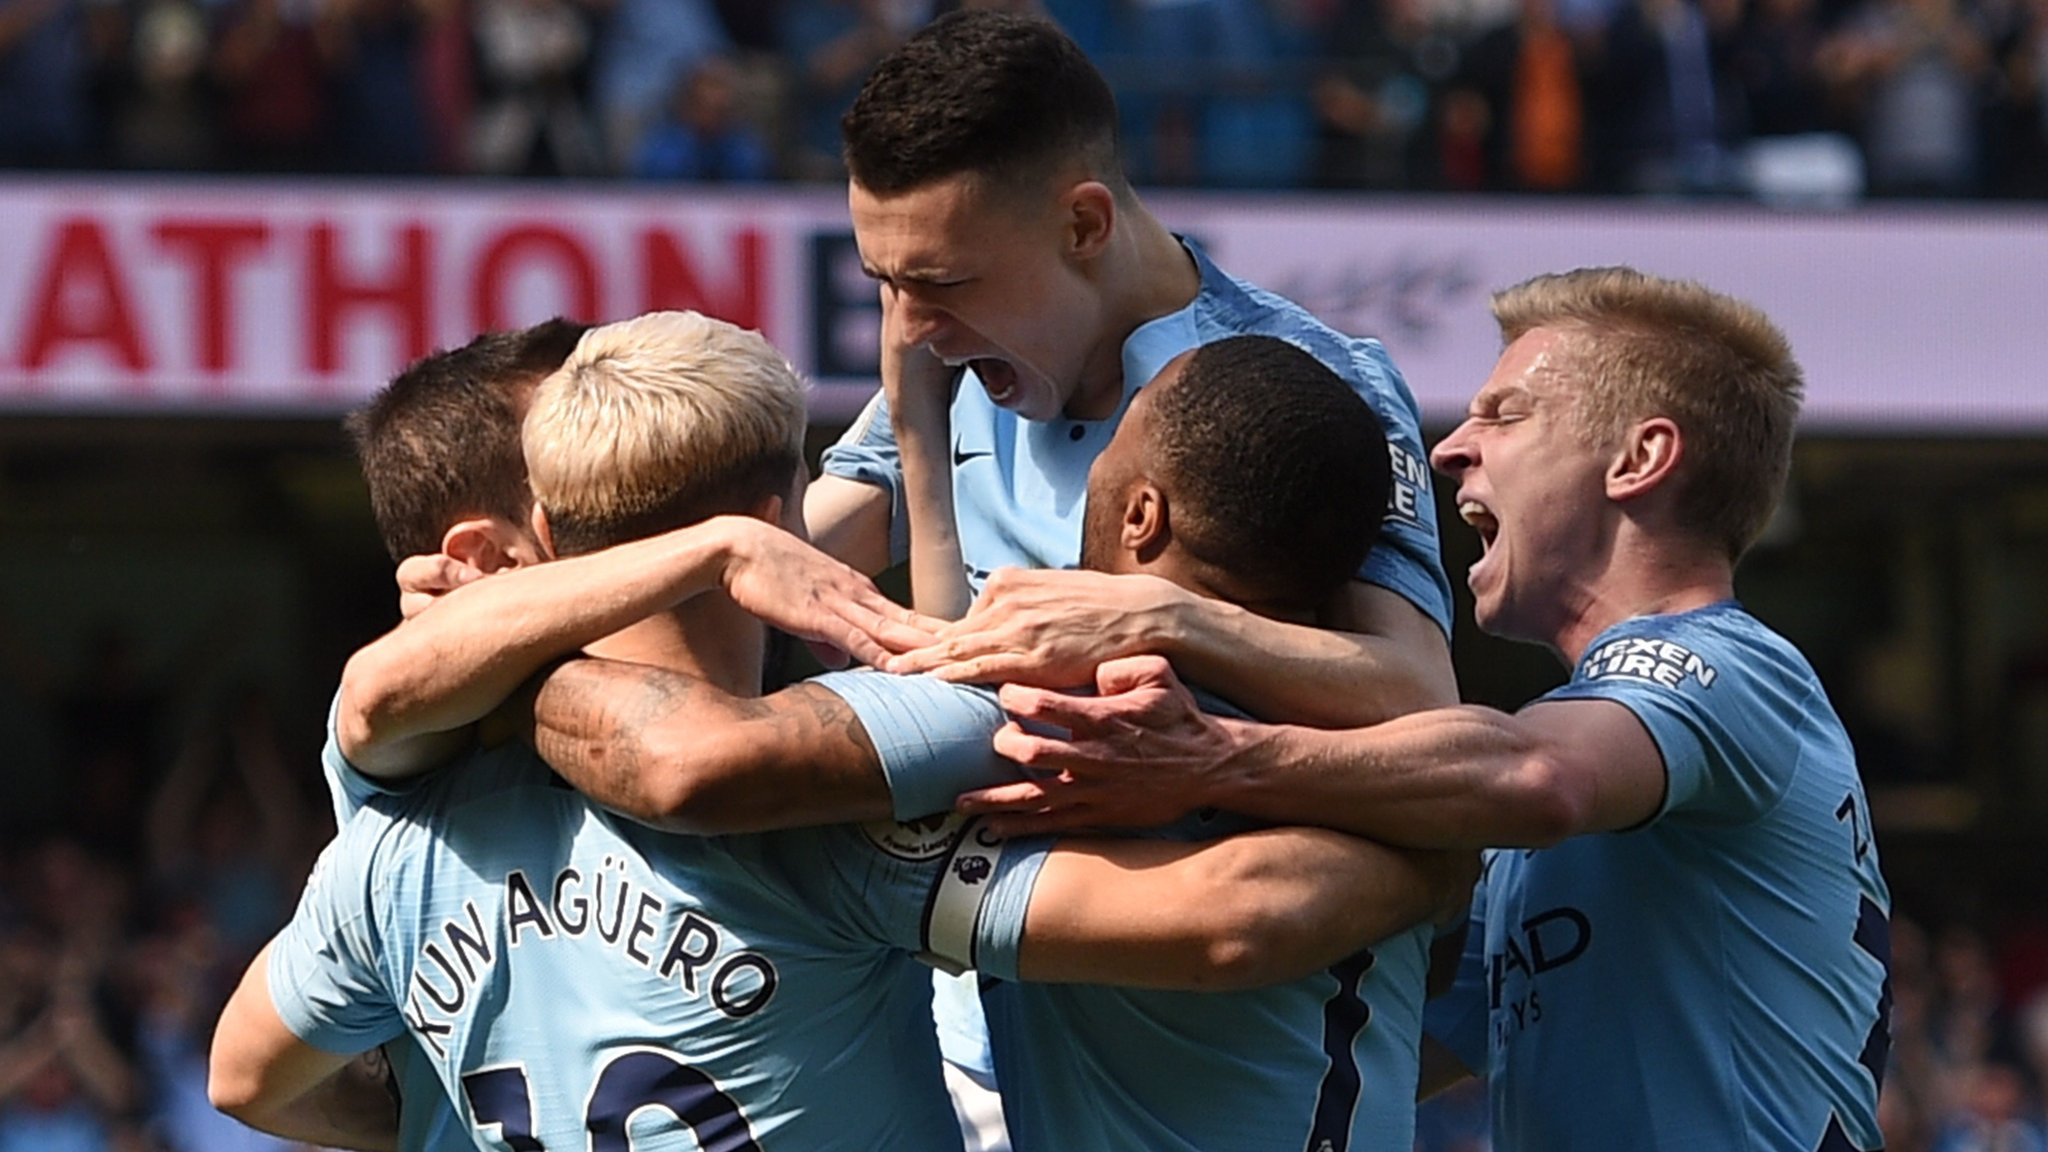 Manchester City 1-0 Tottenham: Phil Foden goal sends City top